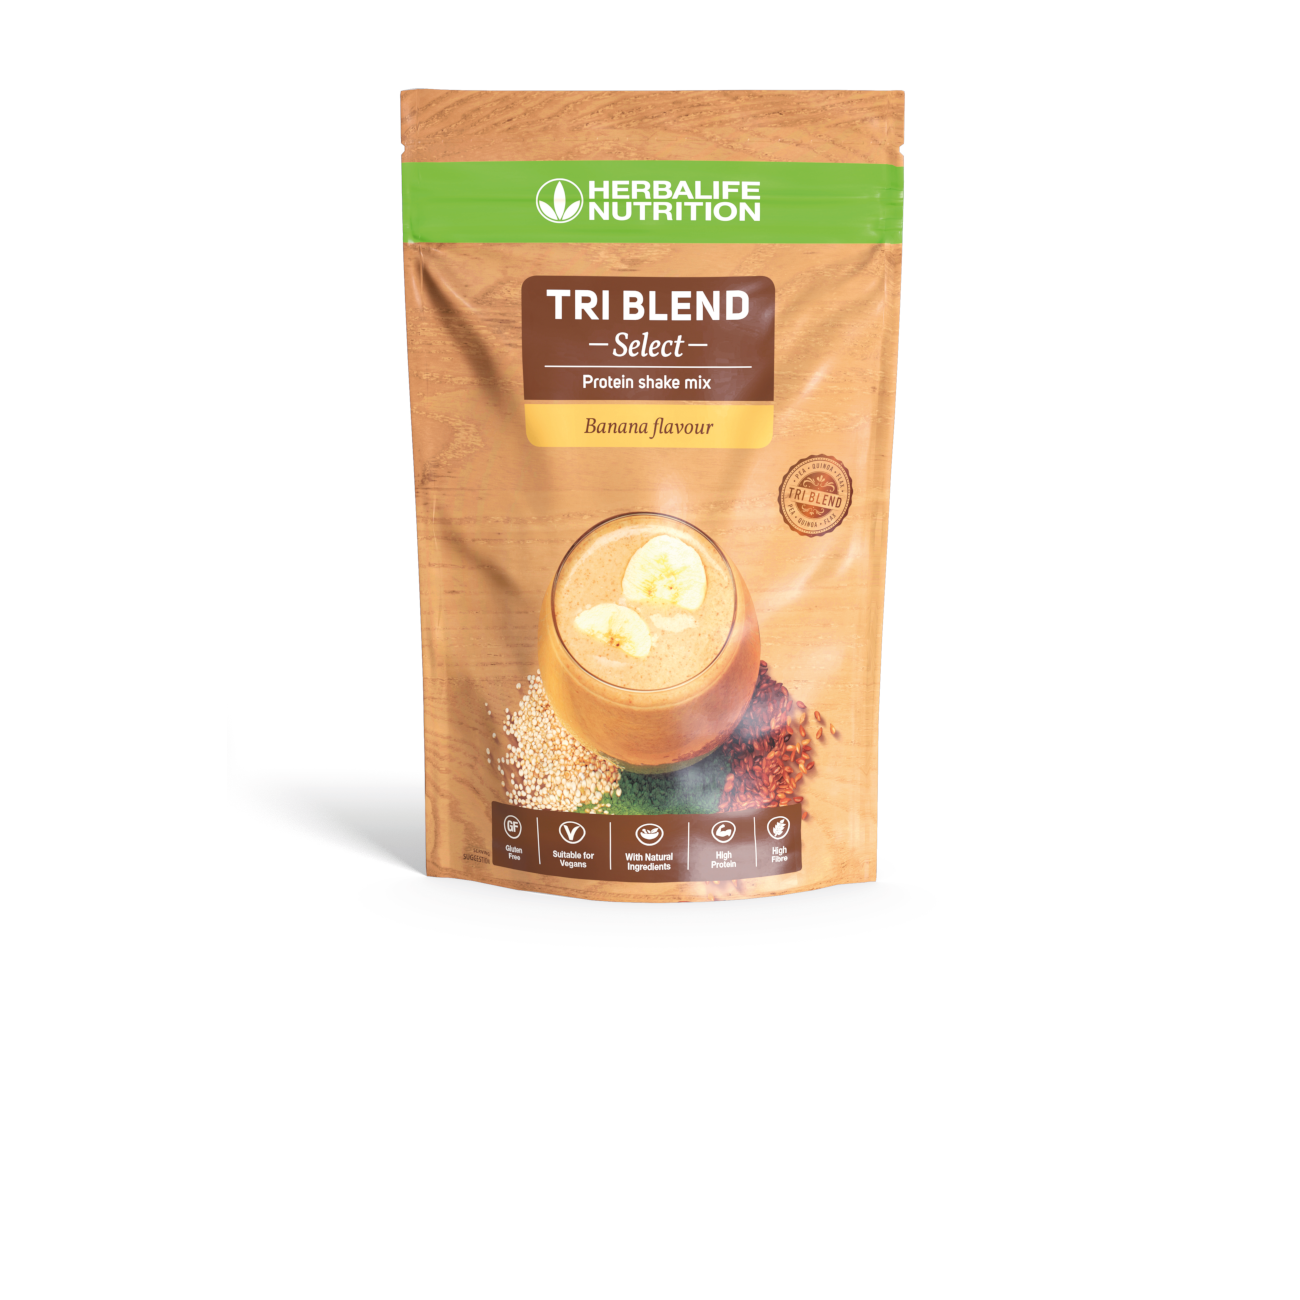 Tri Blend Select Protein Shake Mix Banana Flavoured product shot